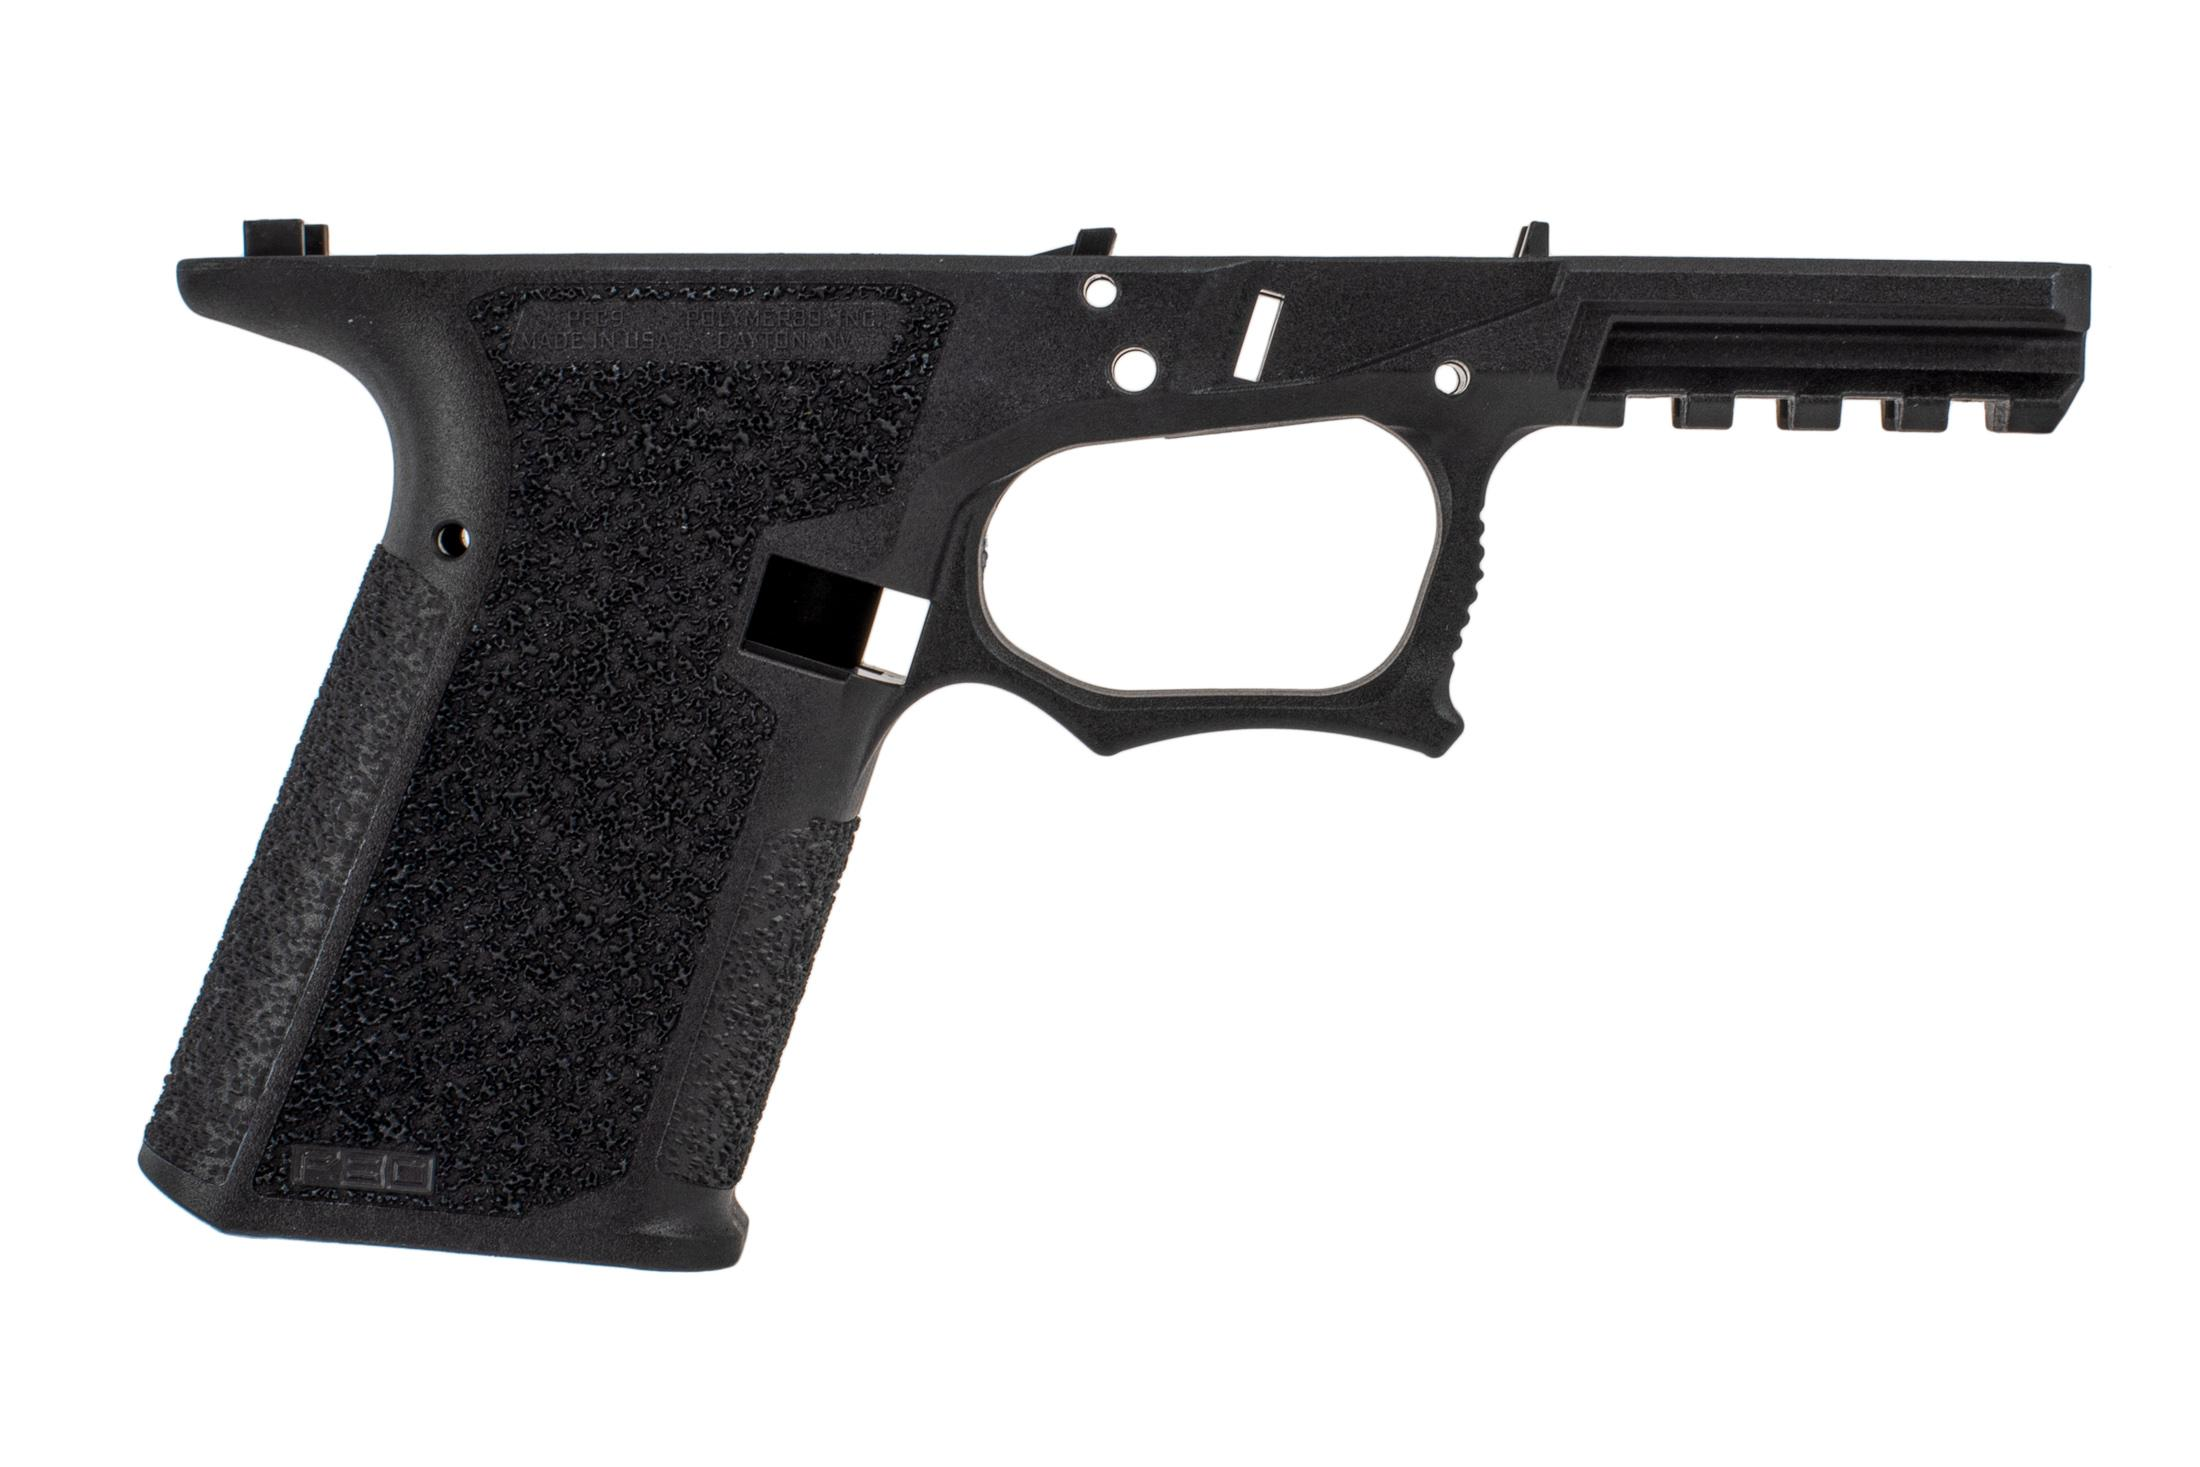 The P80 PFC9 Compact G19 pistol frame features a high undercut trigger guard